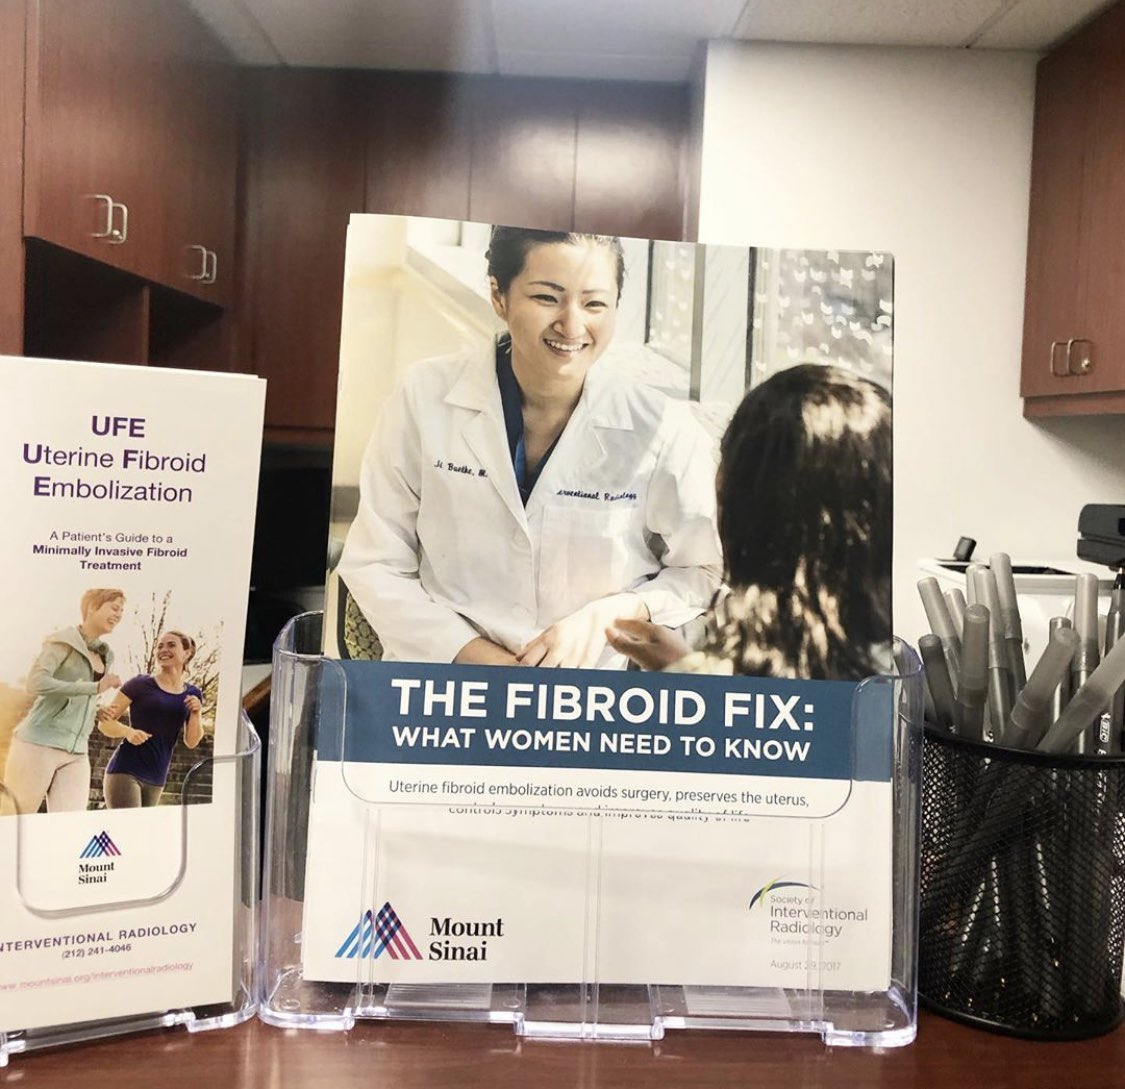 Dealing with symptomatic uterine #Fibroids? Come visit us at